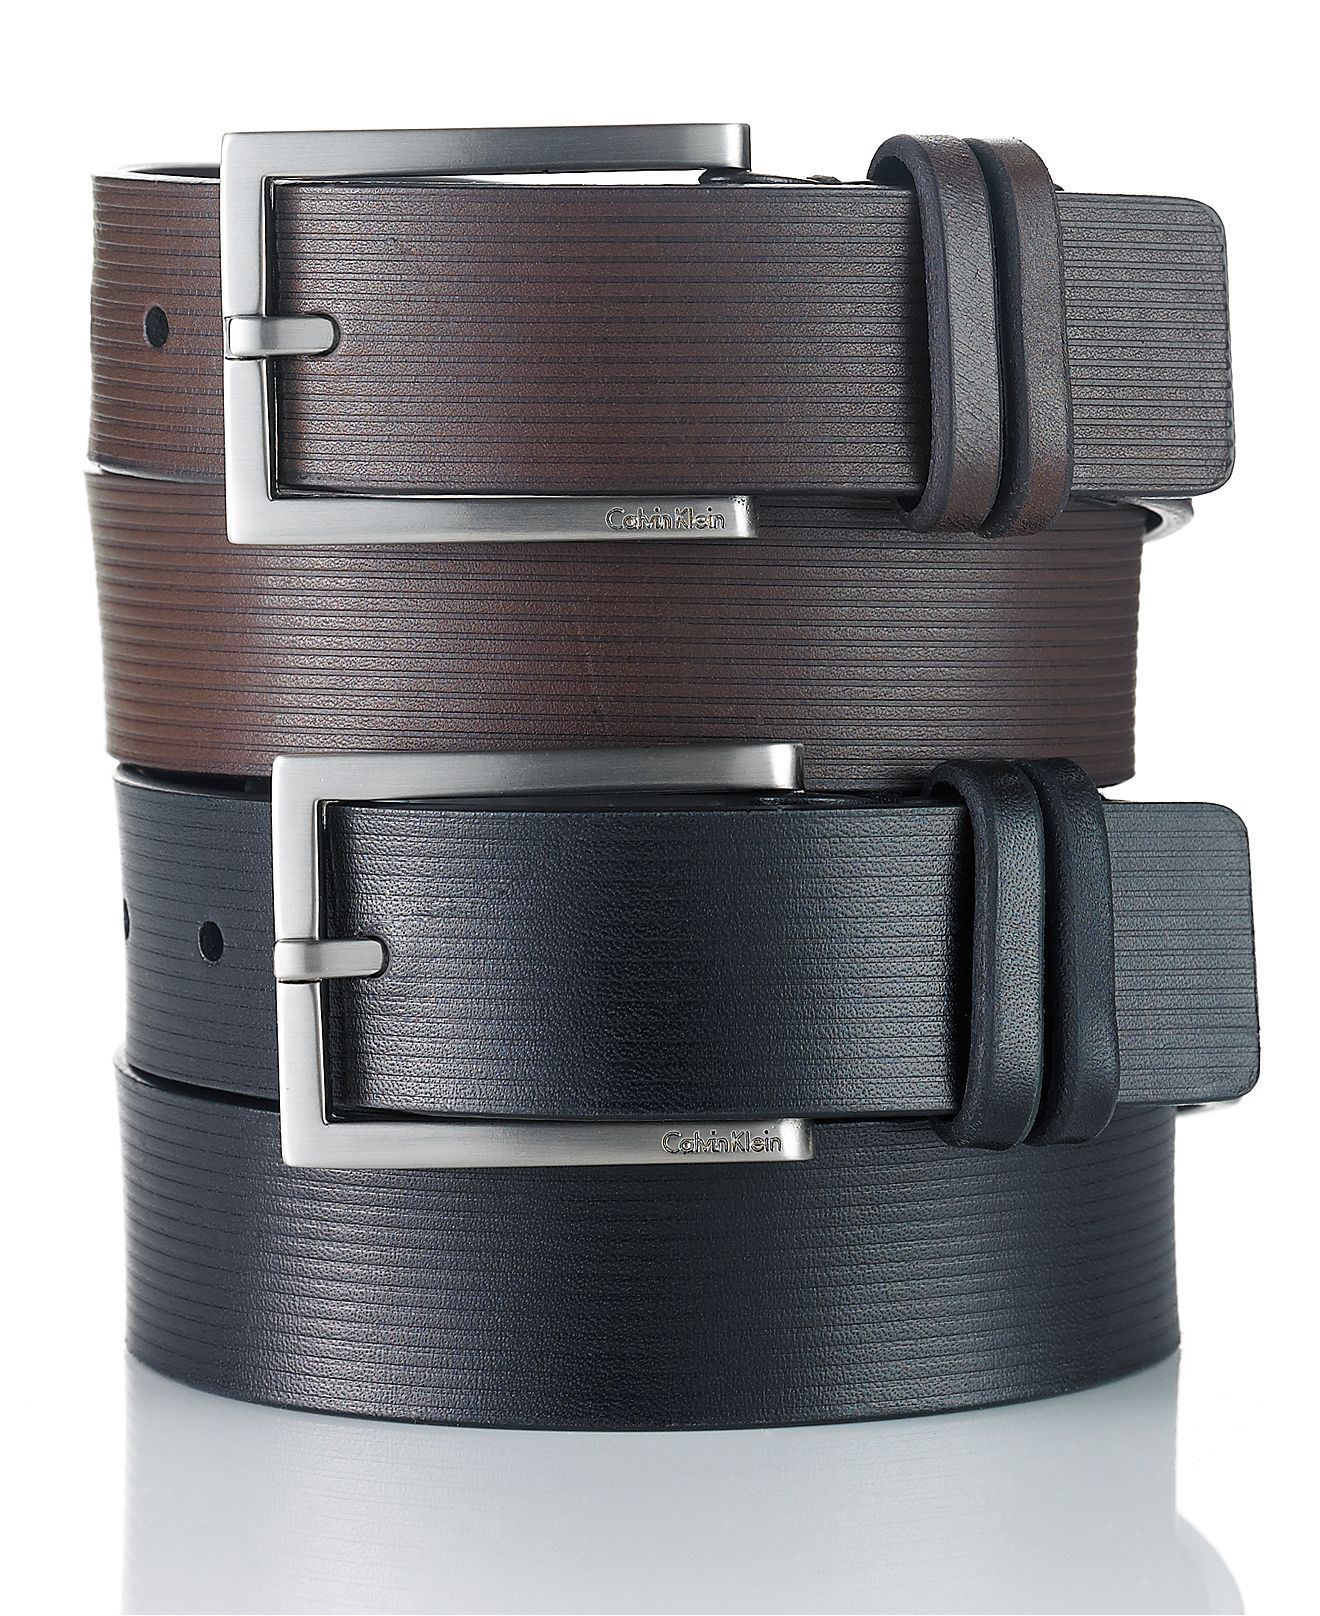 Belt to match my shoes